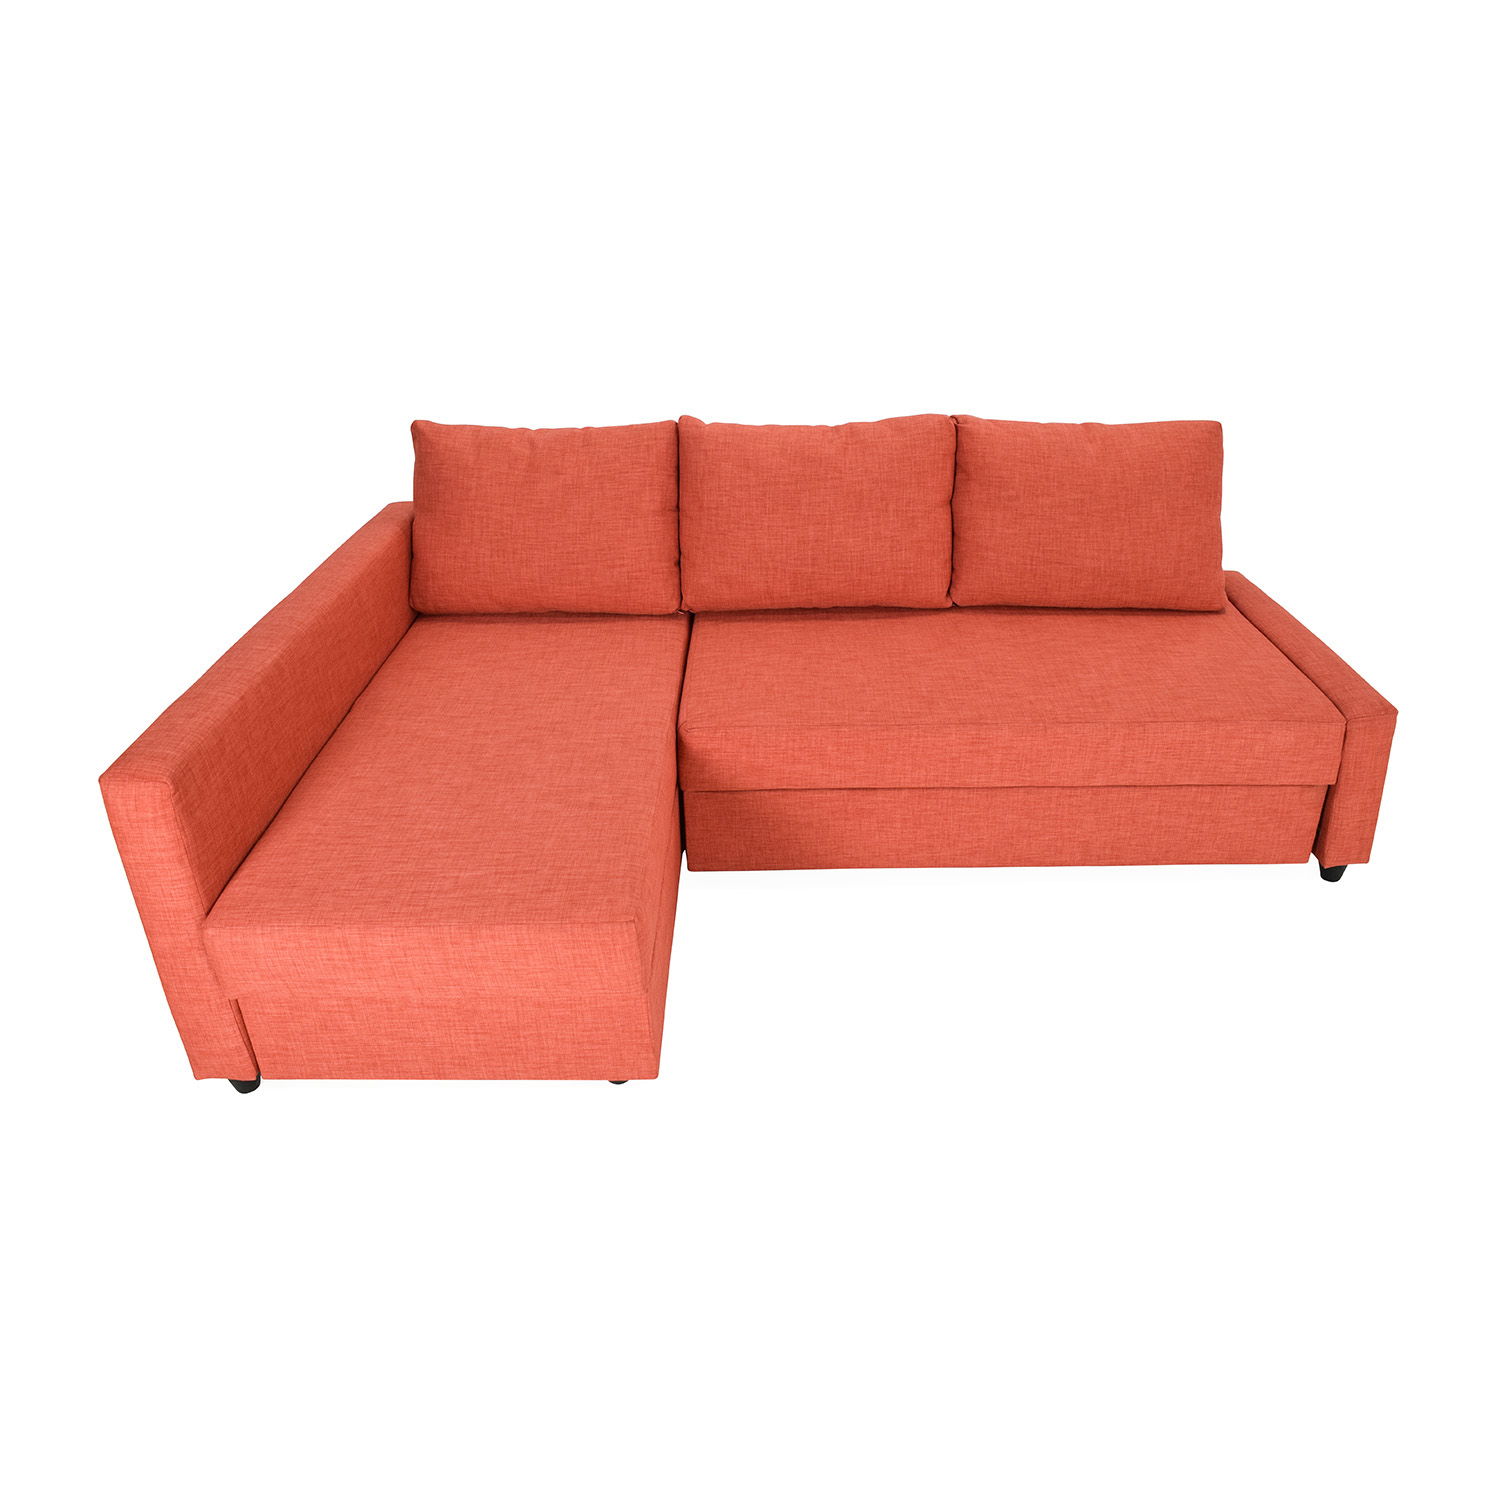 ... IKEA FRIHETEN Sofa Bed With Chaise Sofas ...